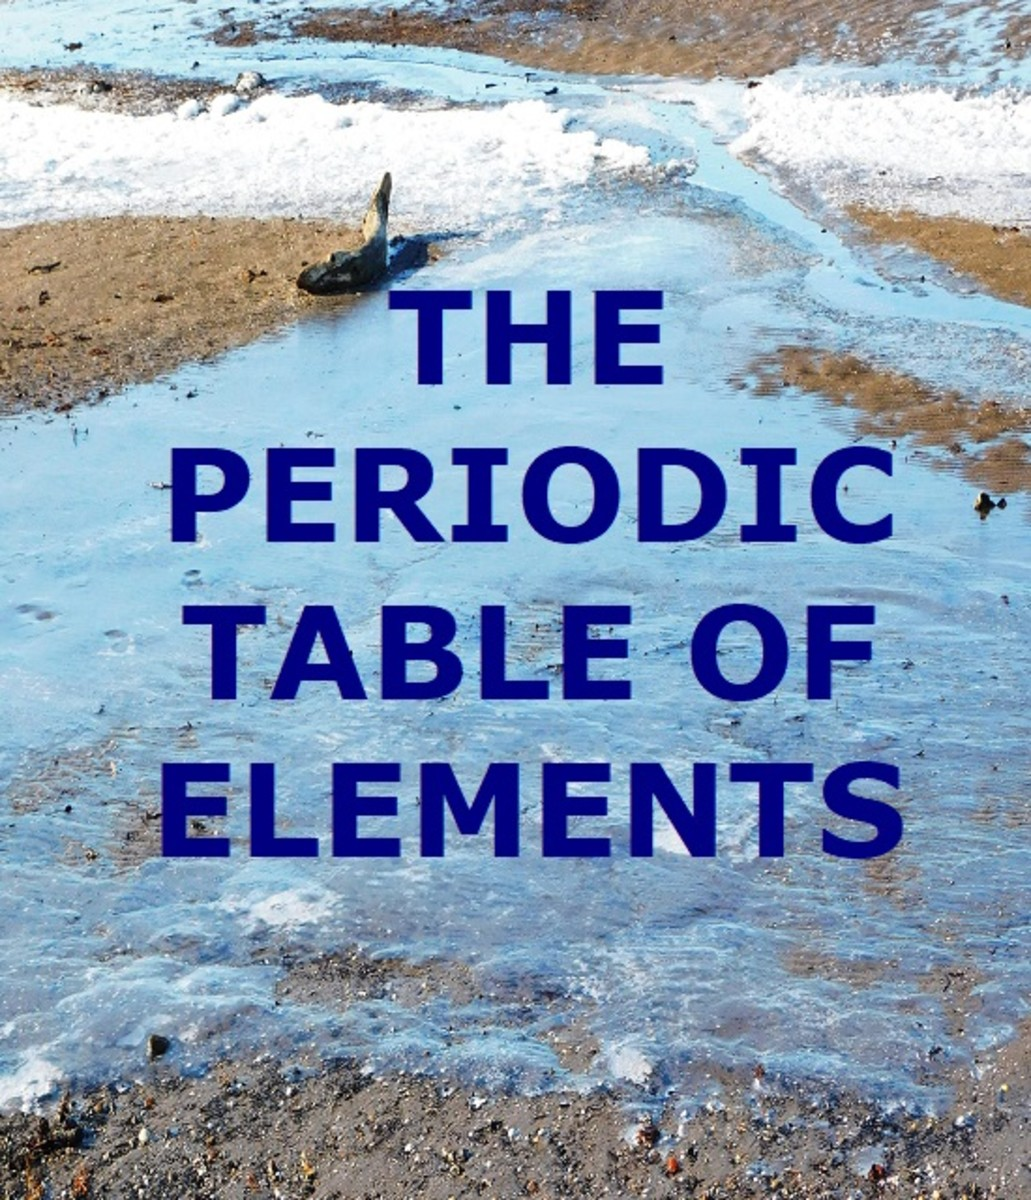 What is the Periodic Table of Elements?